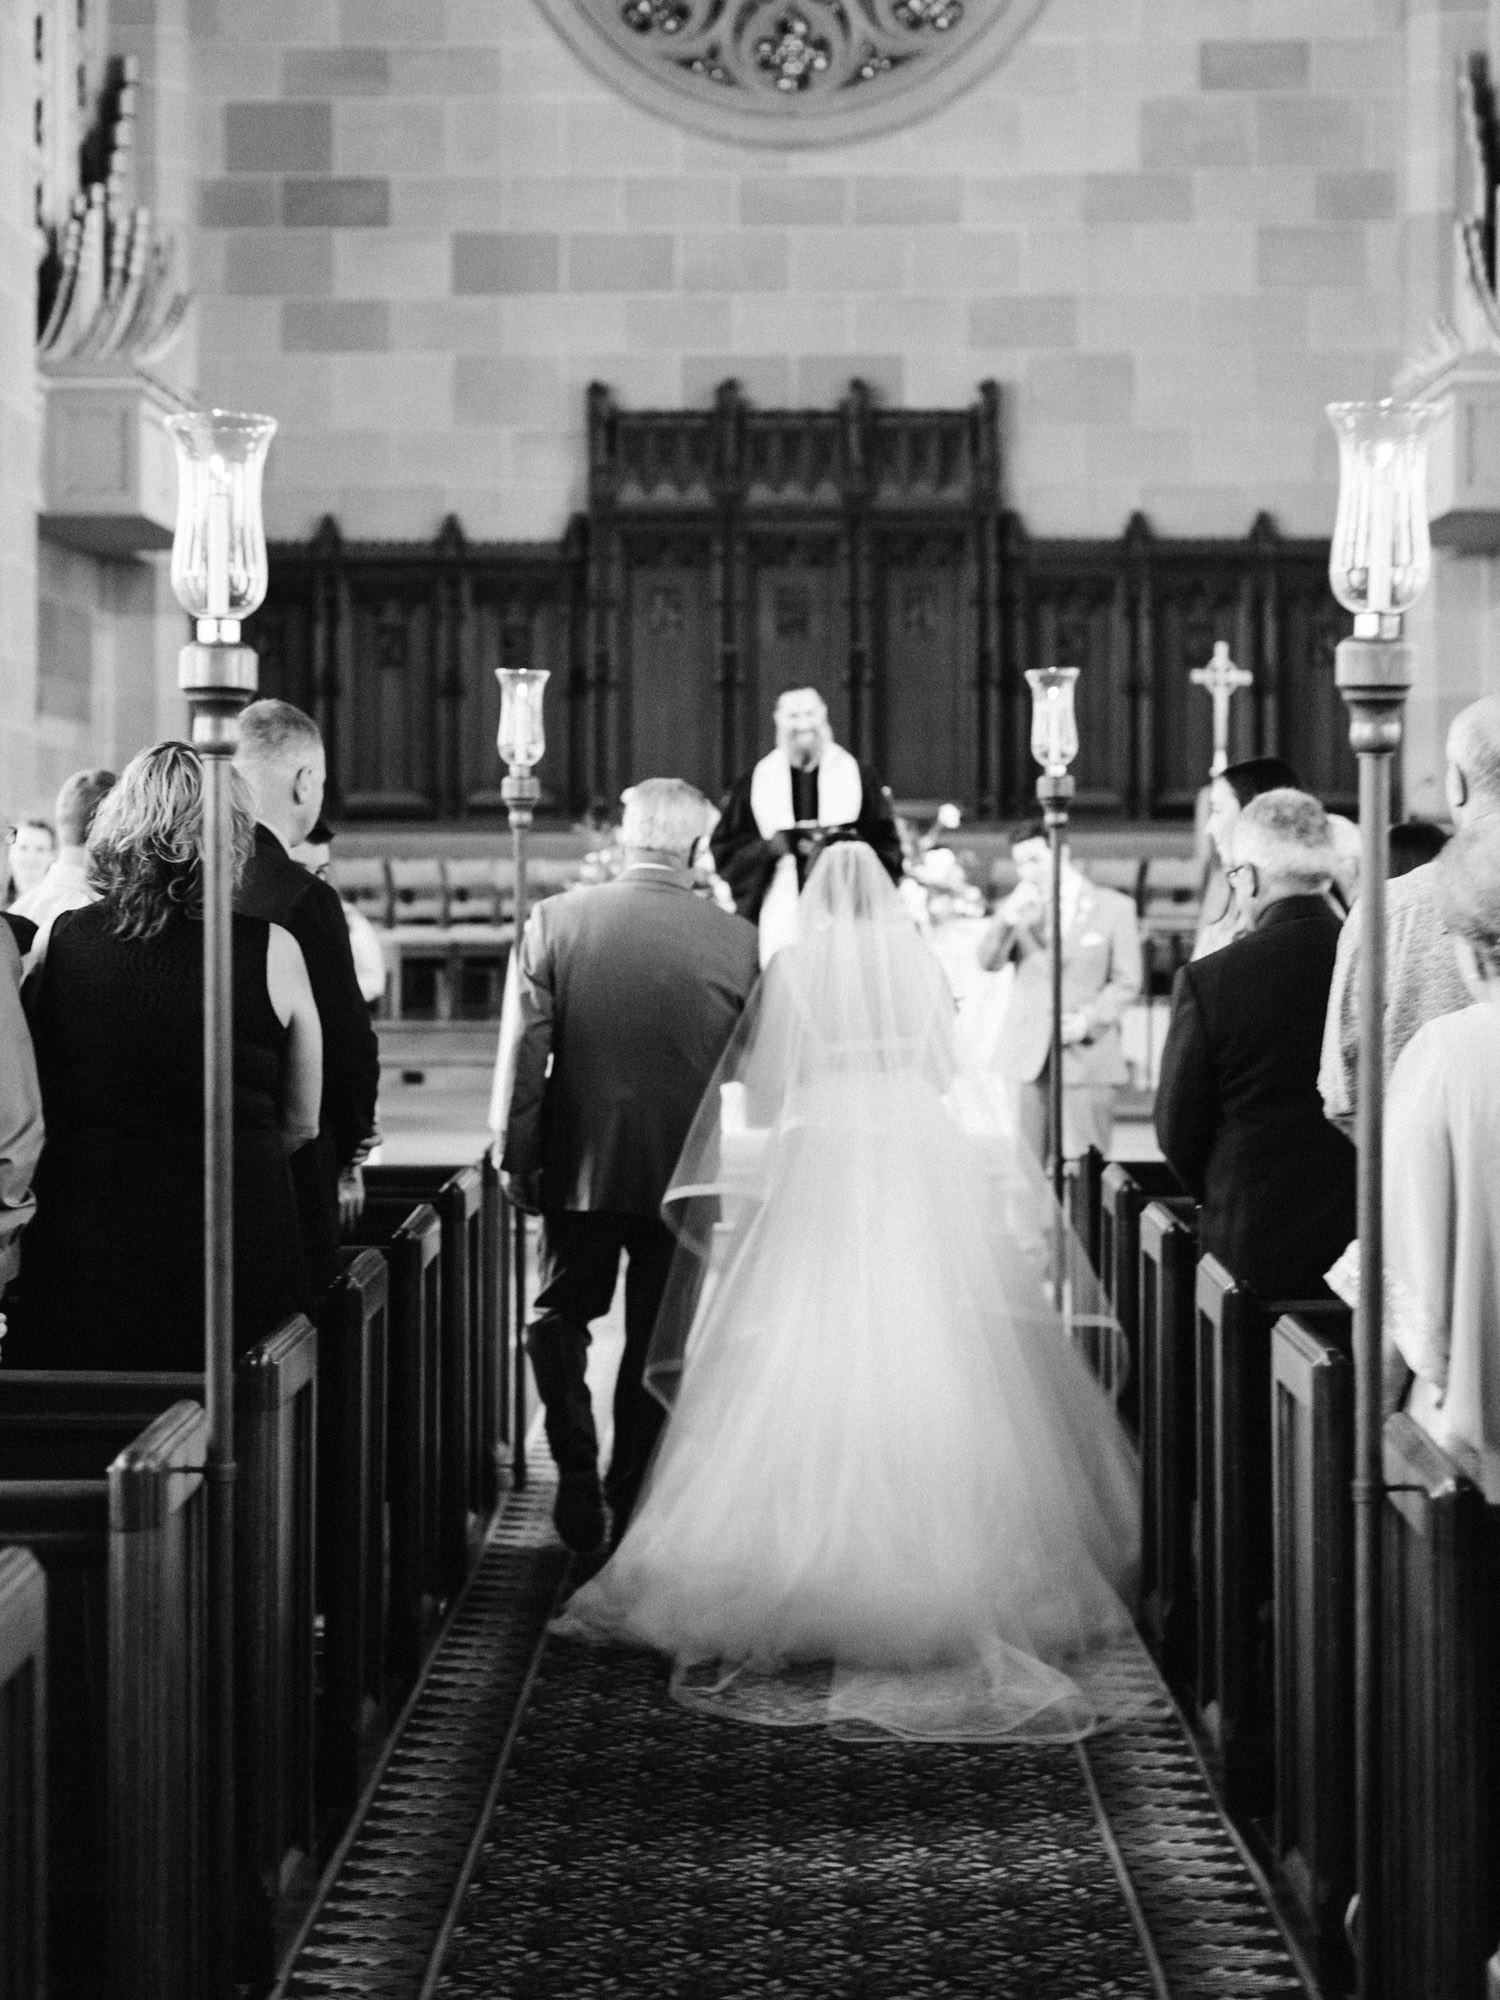 The view from behind the bride and her father as they walk down the church aisle on her wedding day in Ann Arbor, Michigan